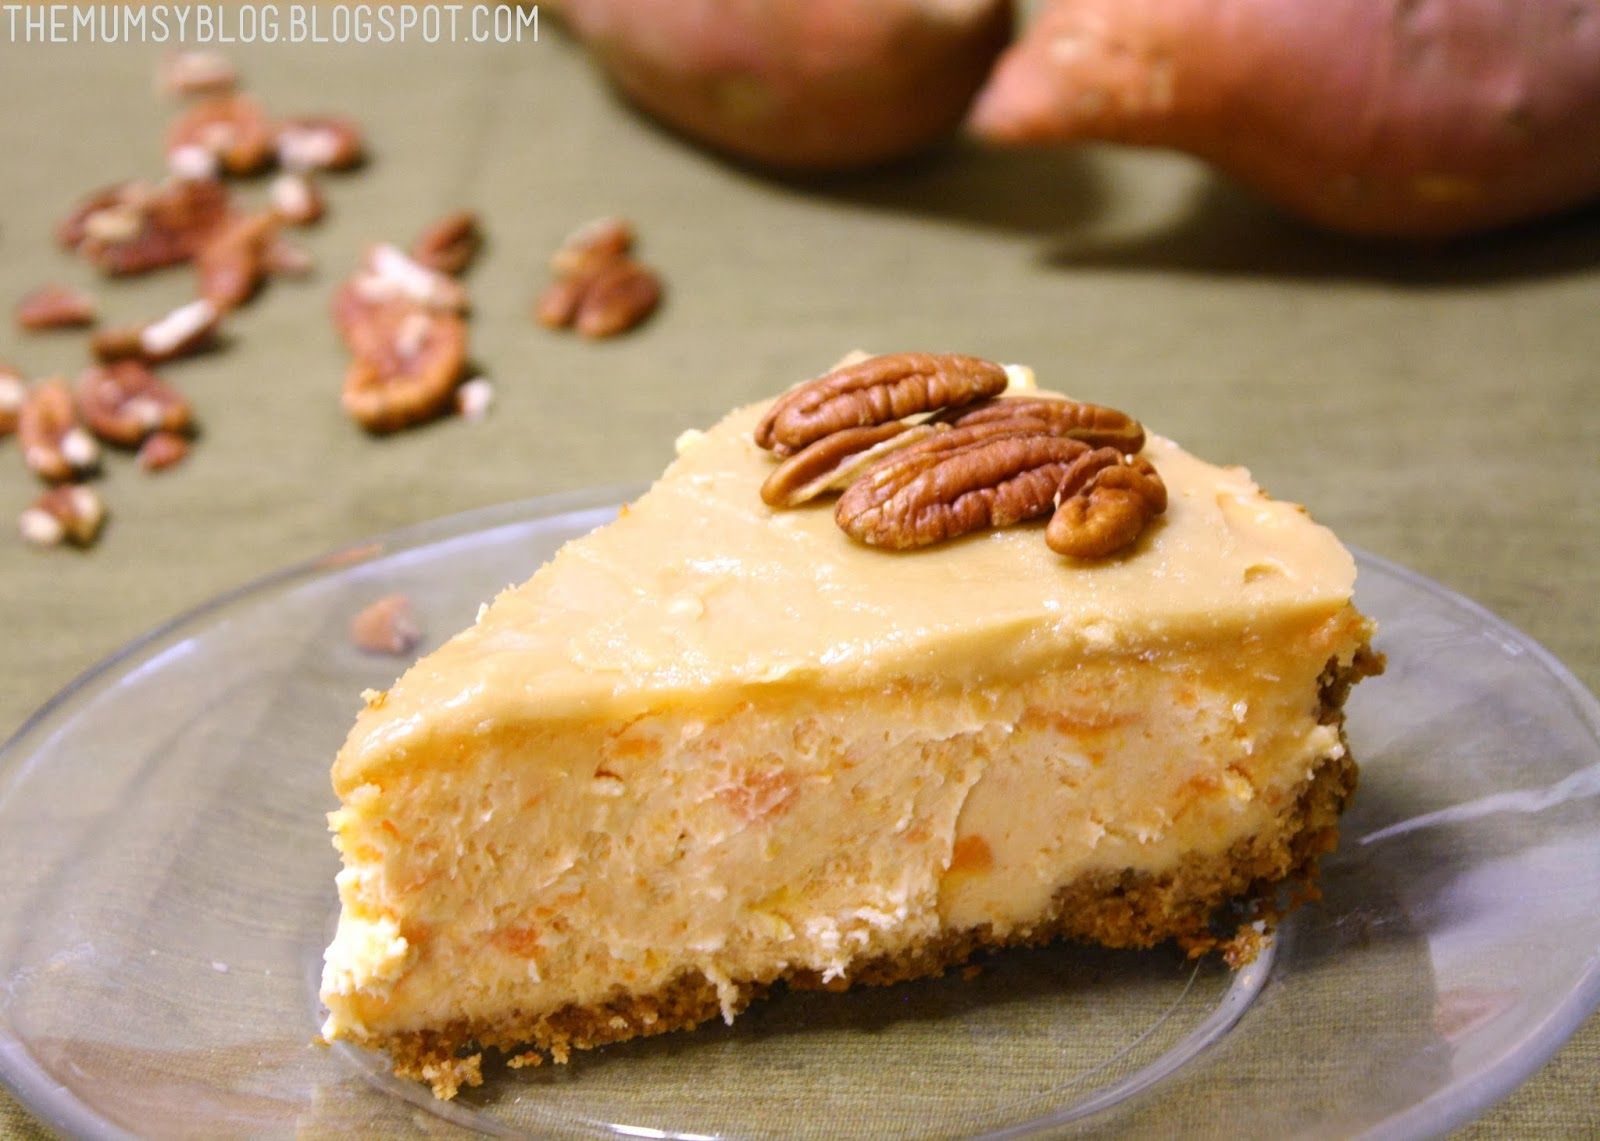 Mumsy: Sweet Potato-Pecan Cheesecake with Praline topping